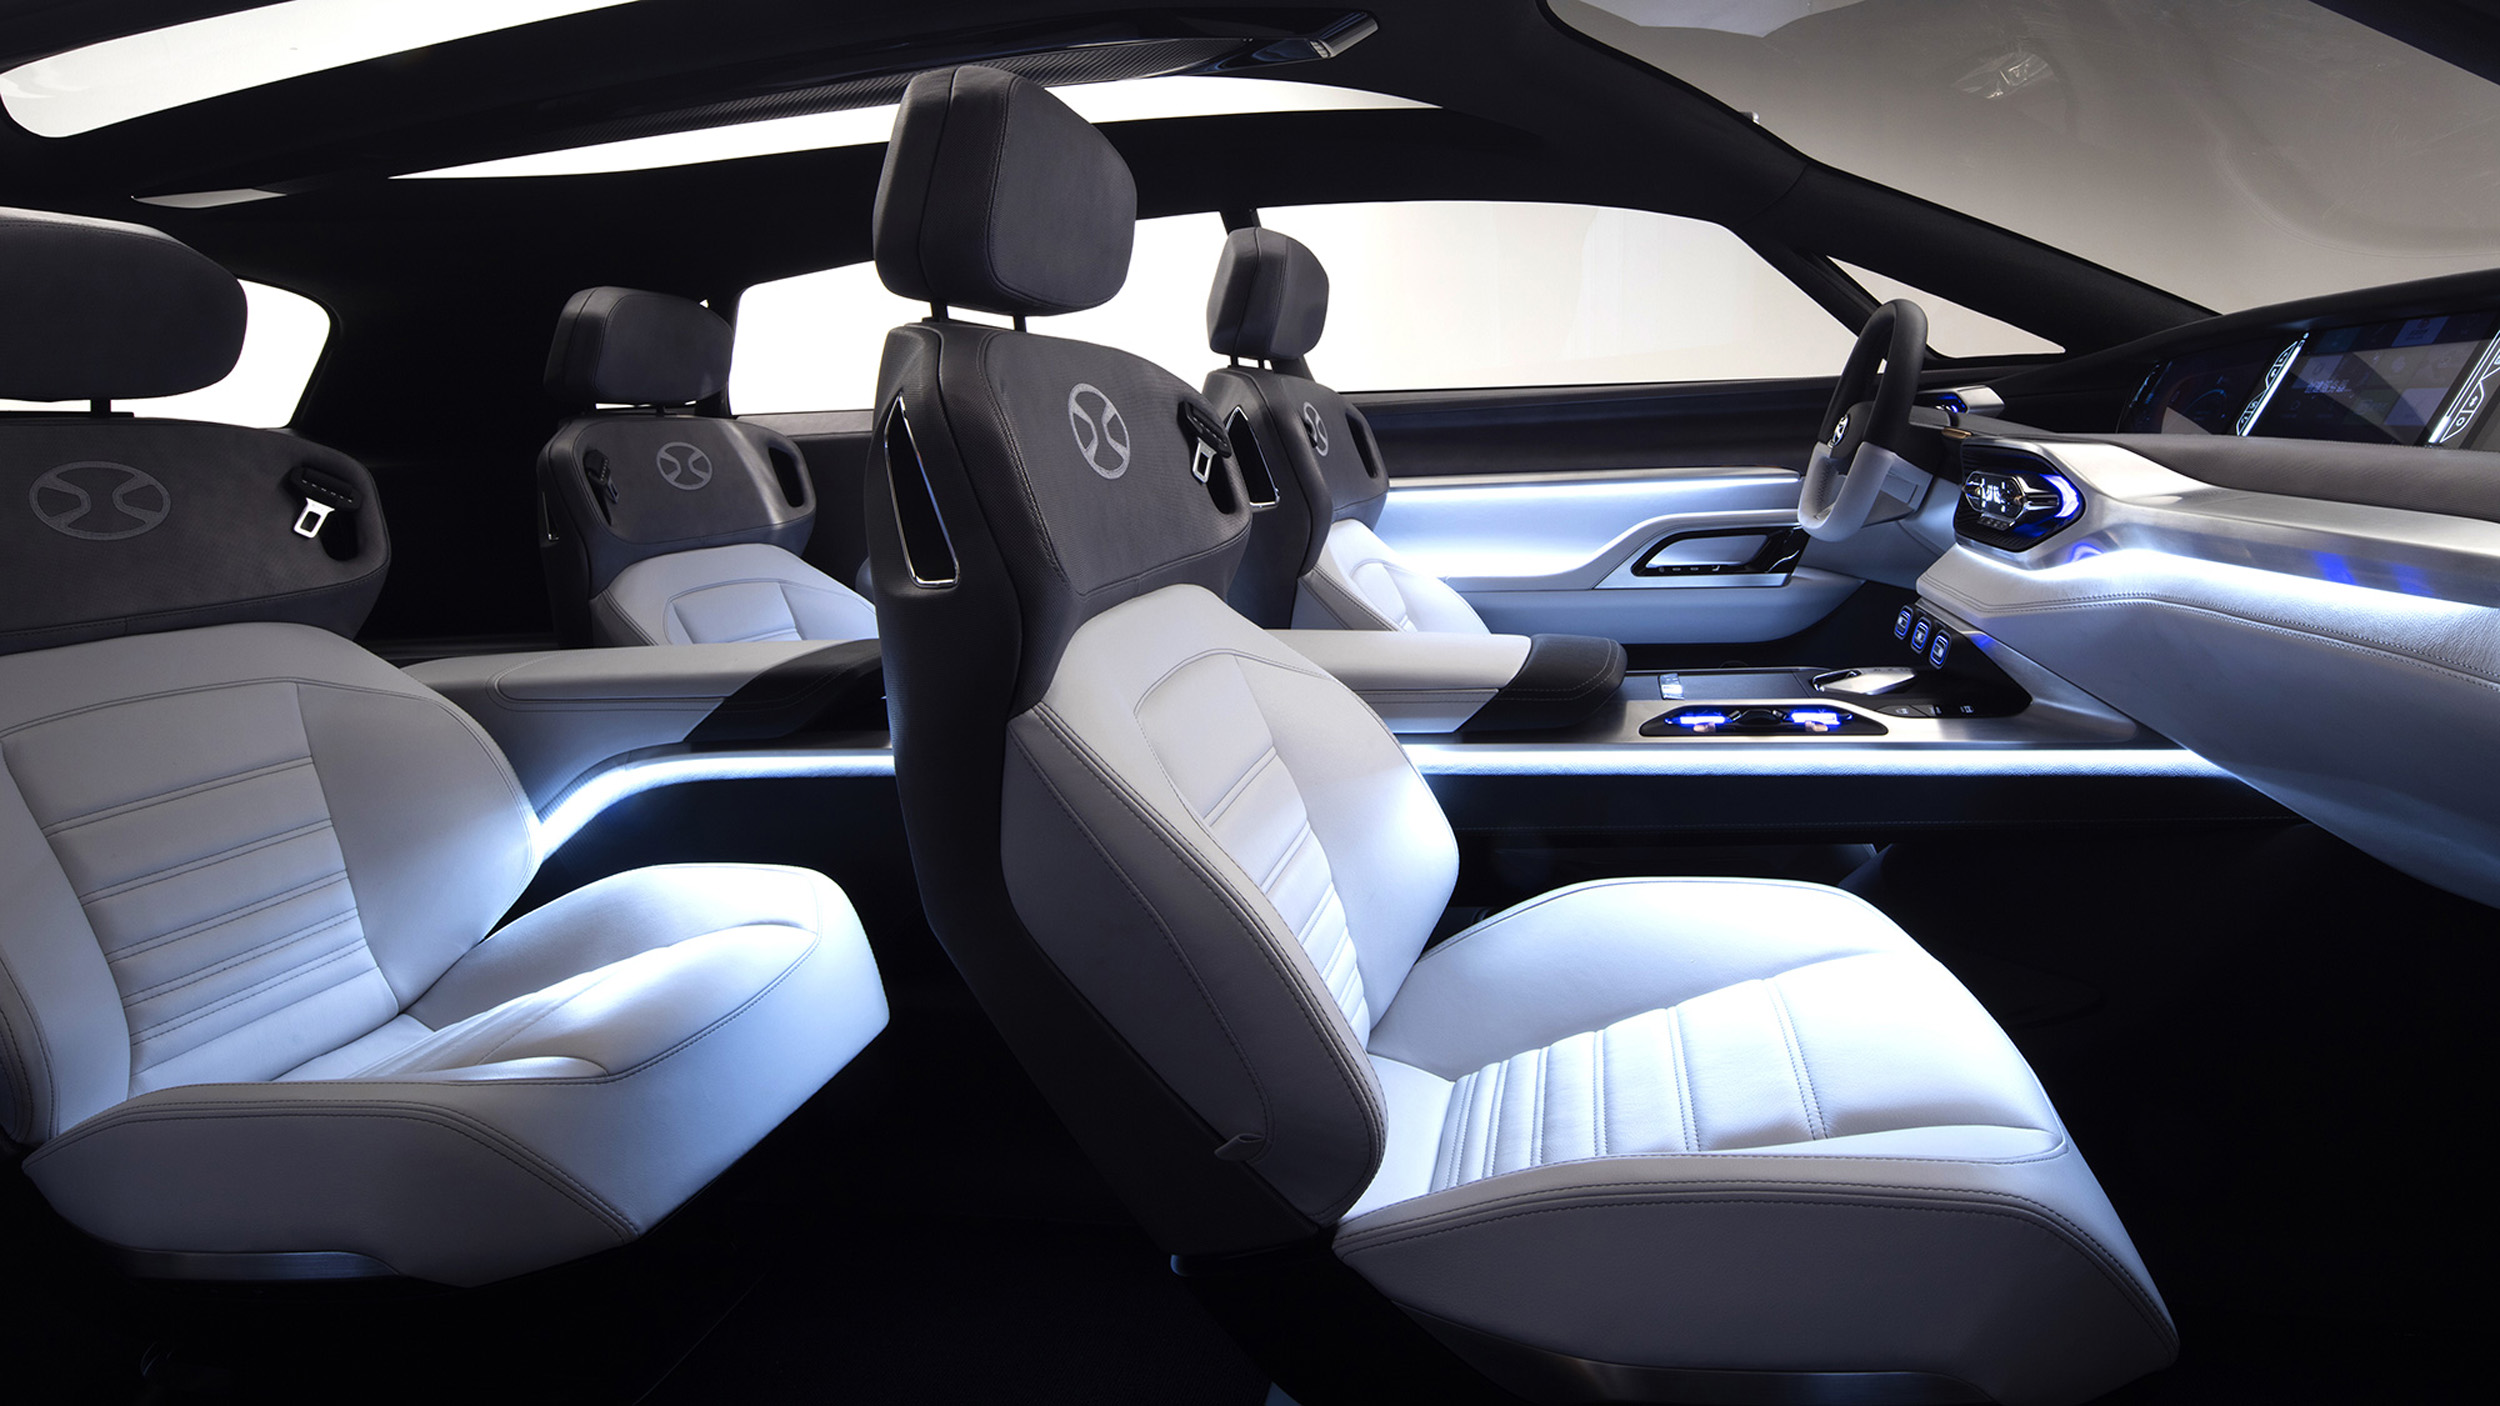 OffSpace-Interior-seats_0.jpg